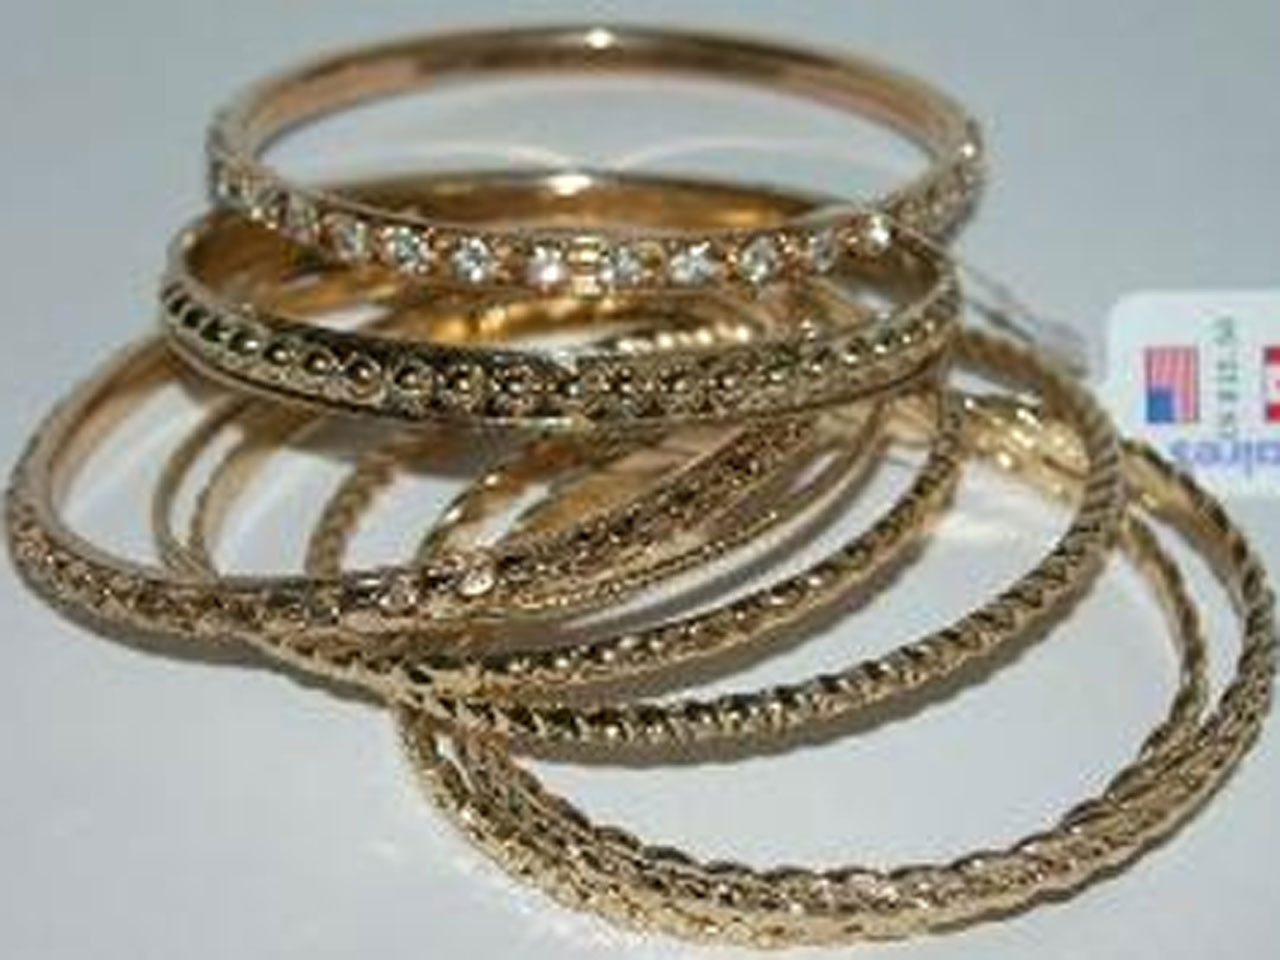 b375650ef2 Costume jewelry found to have high levels of toxins and carcinogens, tests  show